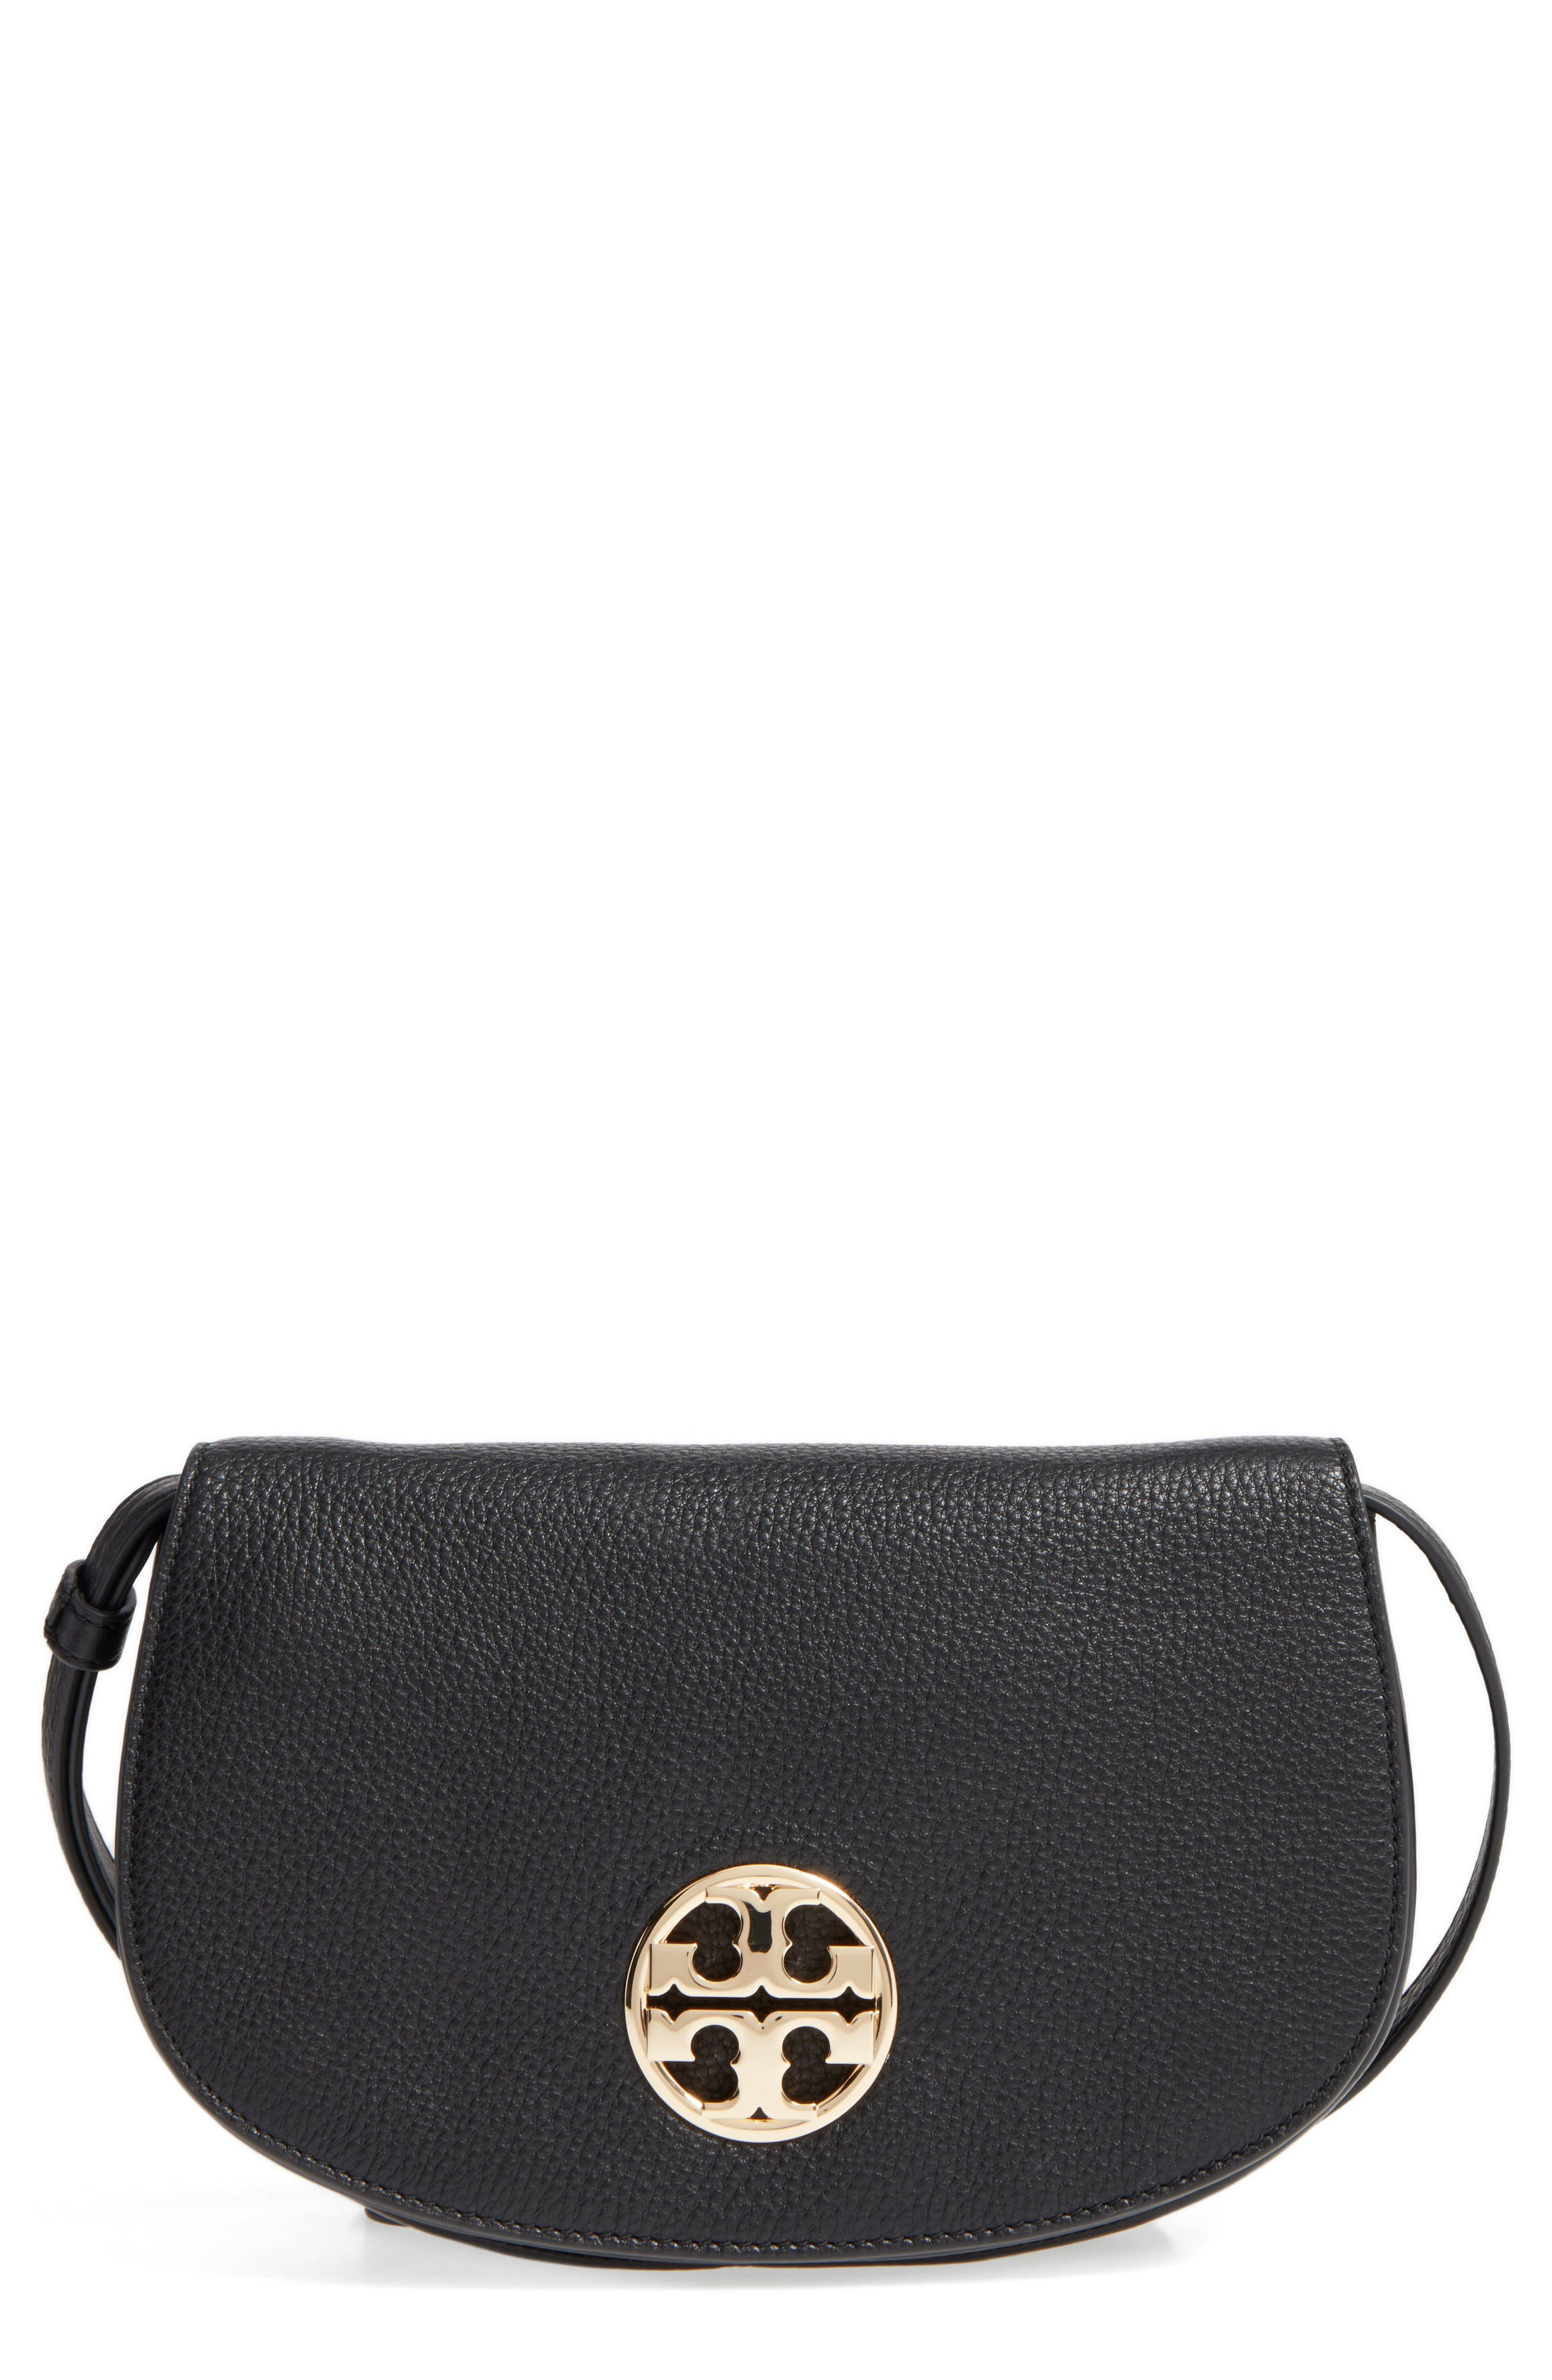 TORY BURCH Jamie Convertible Leather Clutch, Main, color, 001